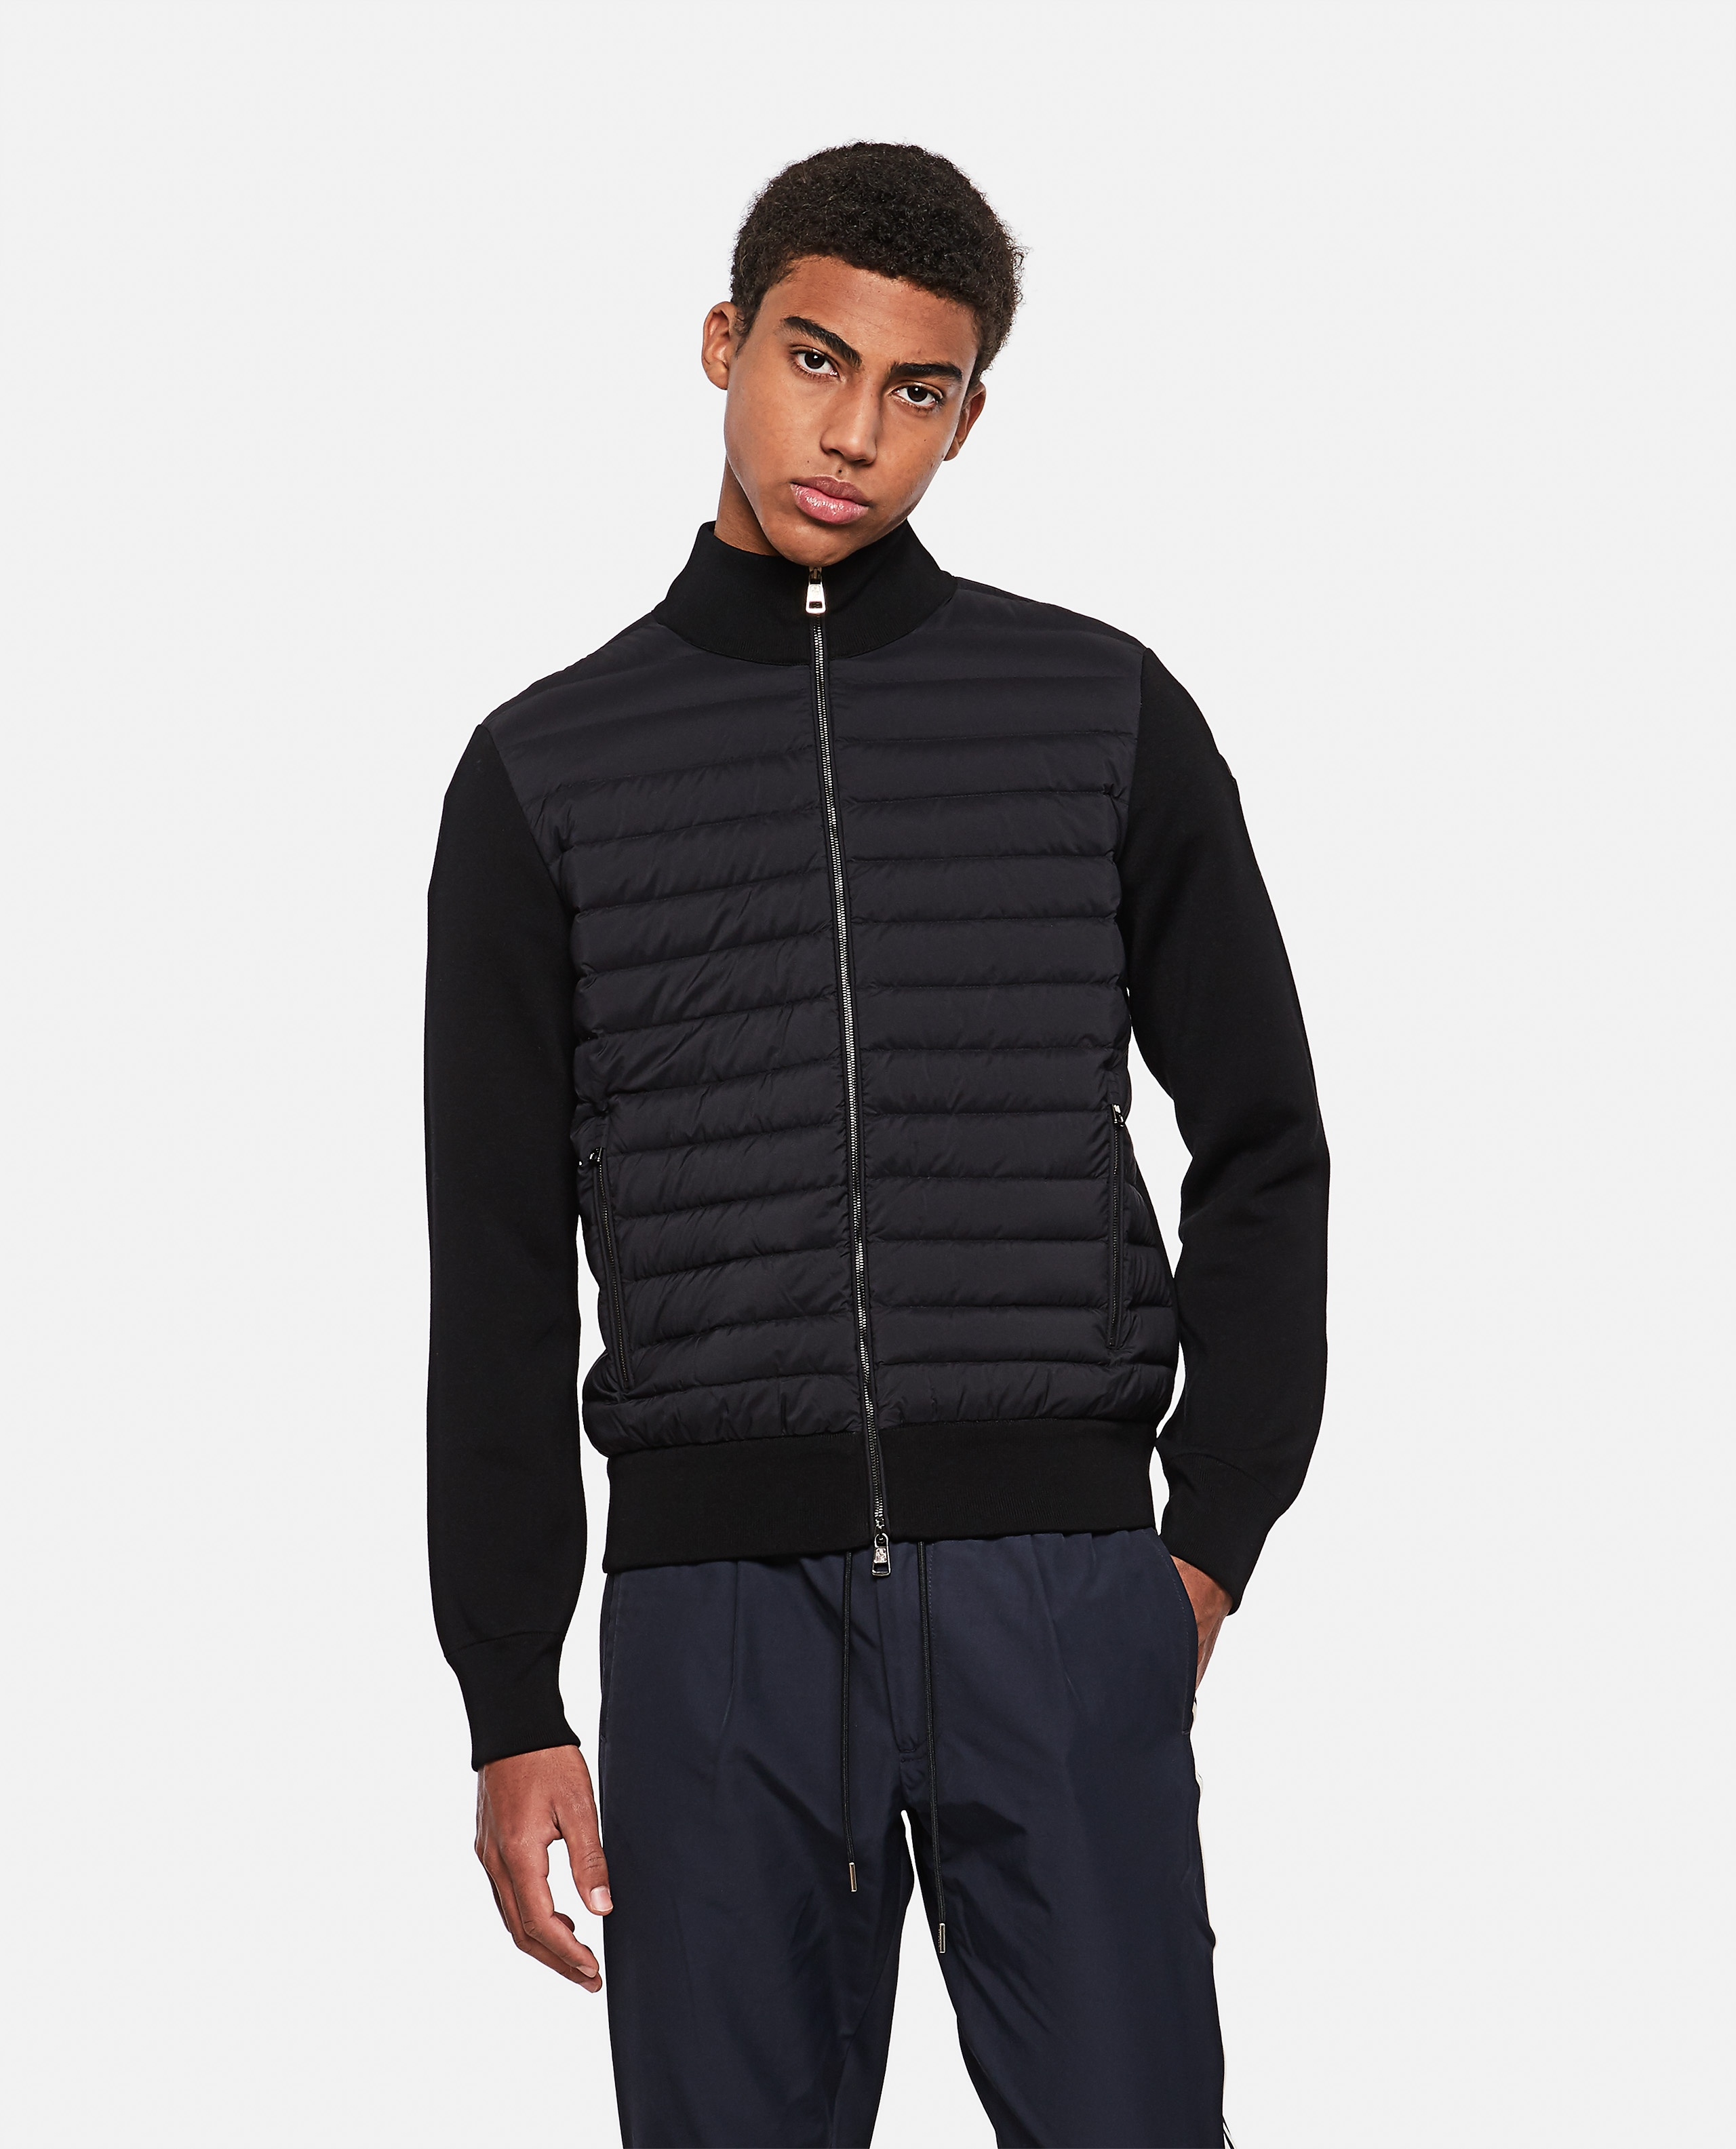 Tricot cardigan with padded detail Men Moncler 000315490046237 1